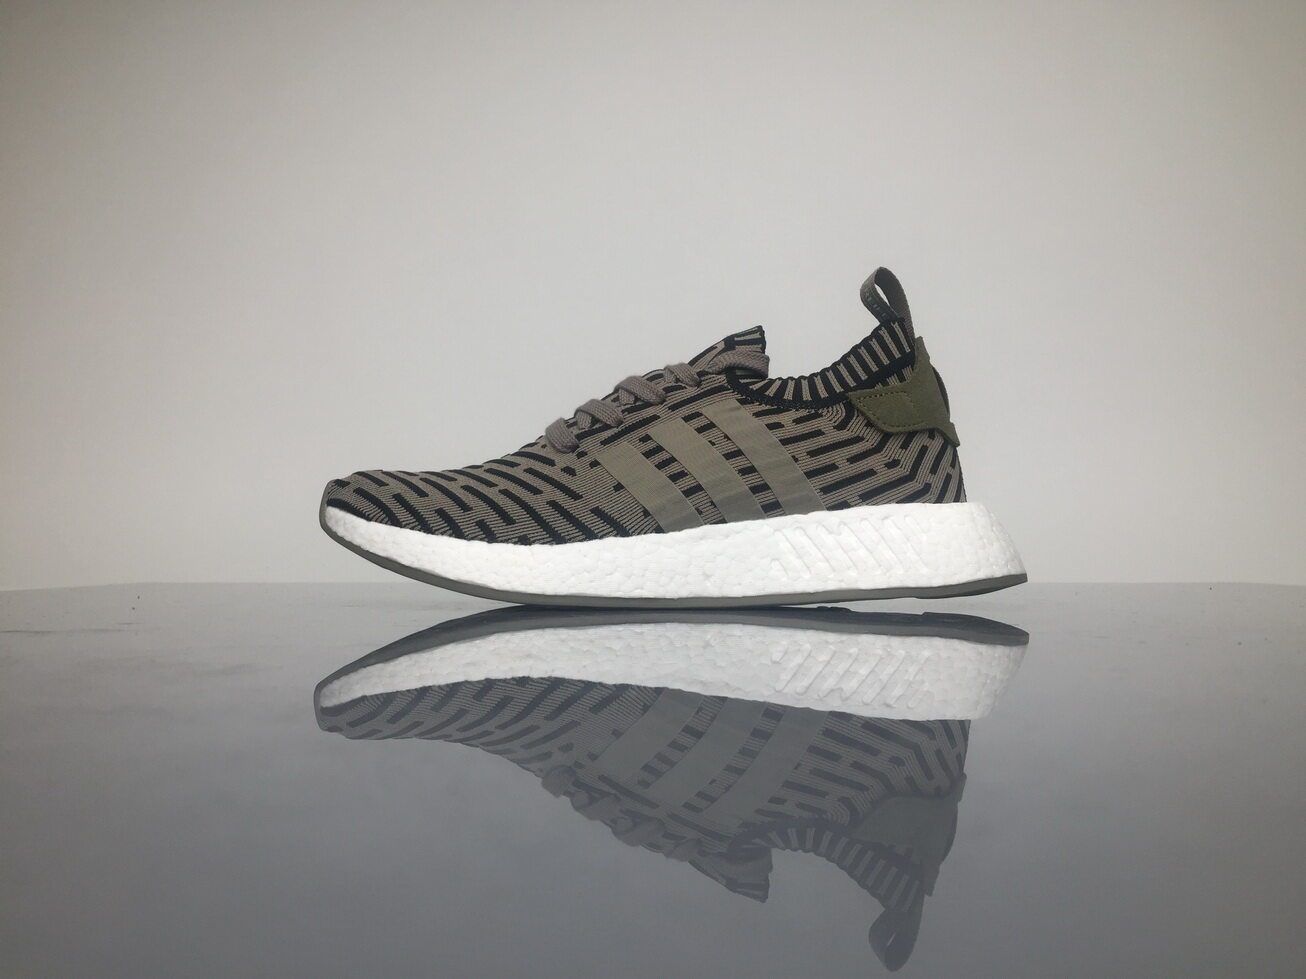 big sale 1dad9 d5a31 Khaki adidas NMD R2 OG